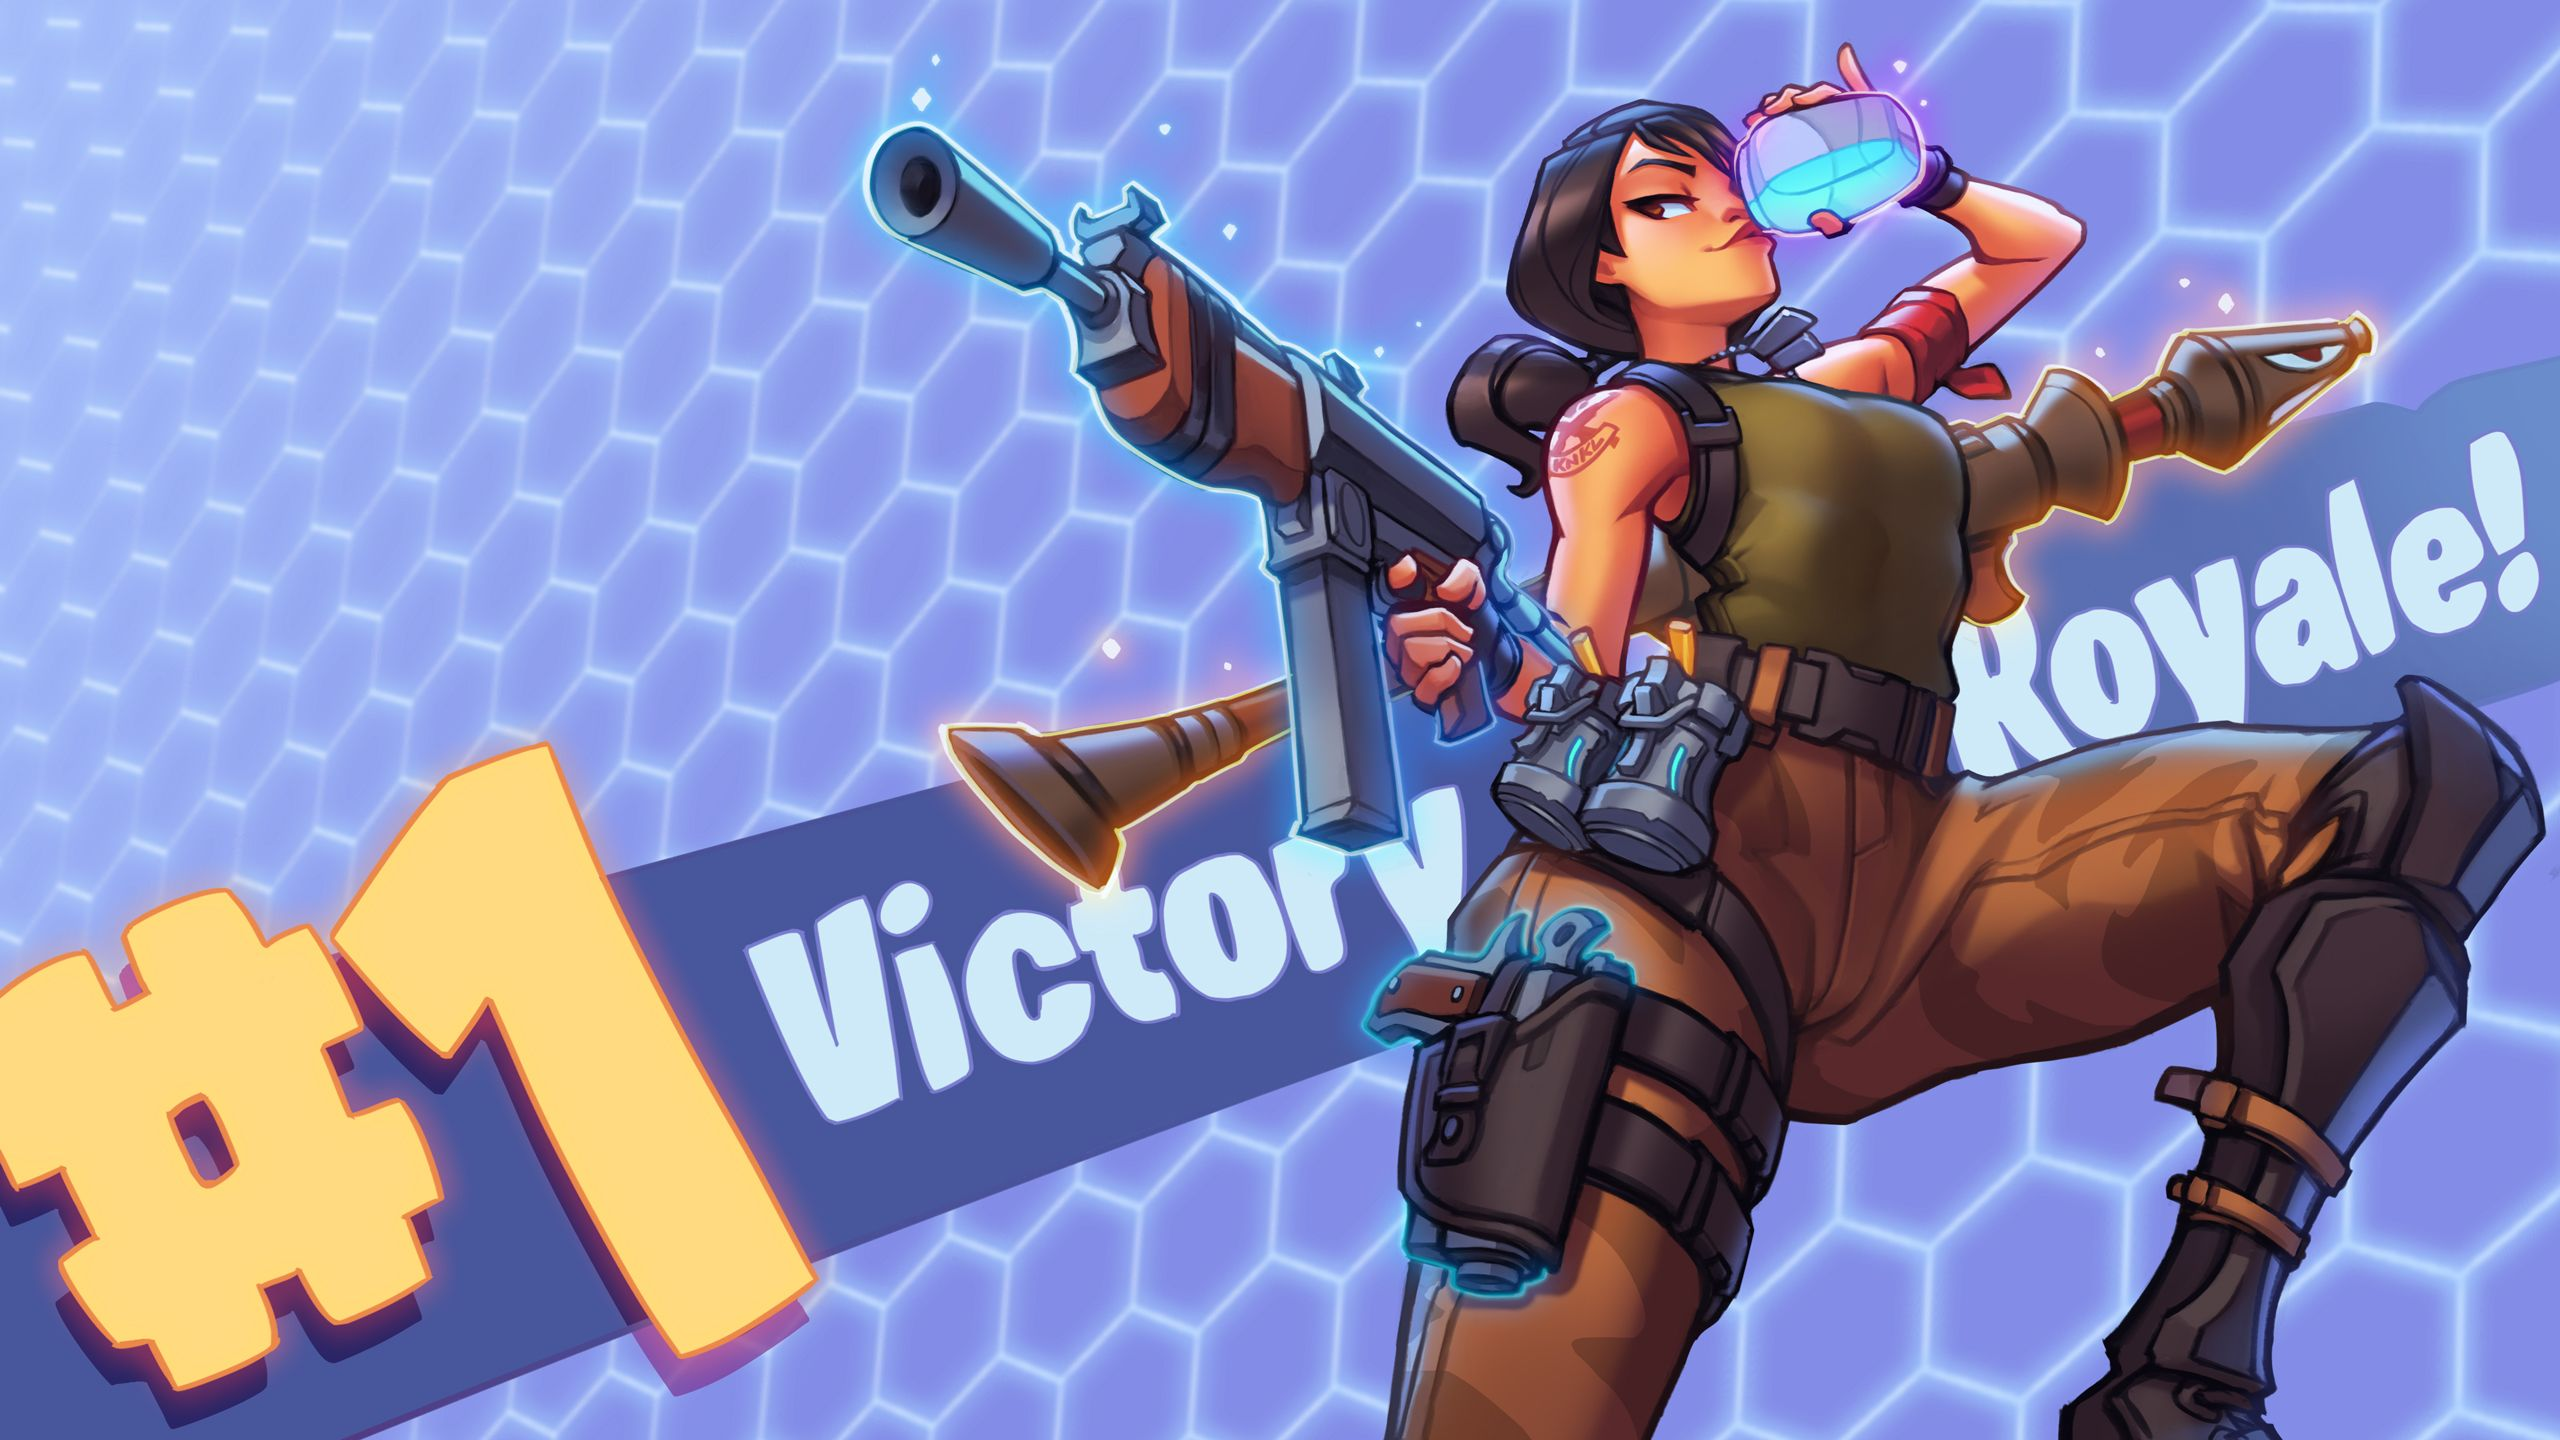 Fortnite Victory Royale Wallpapers Wallpaper Cave Fortnite Victorious Video Game Characters